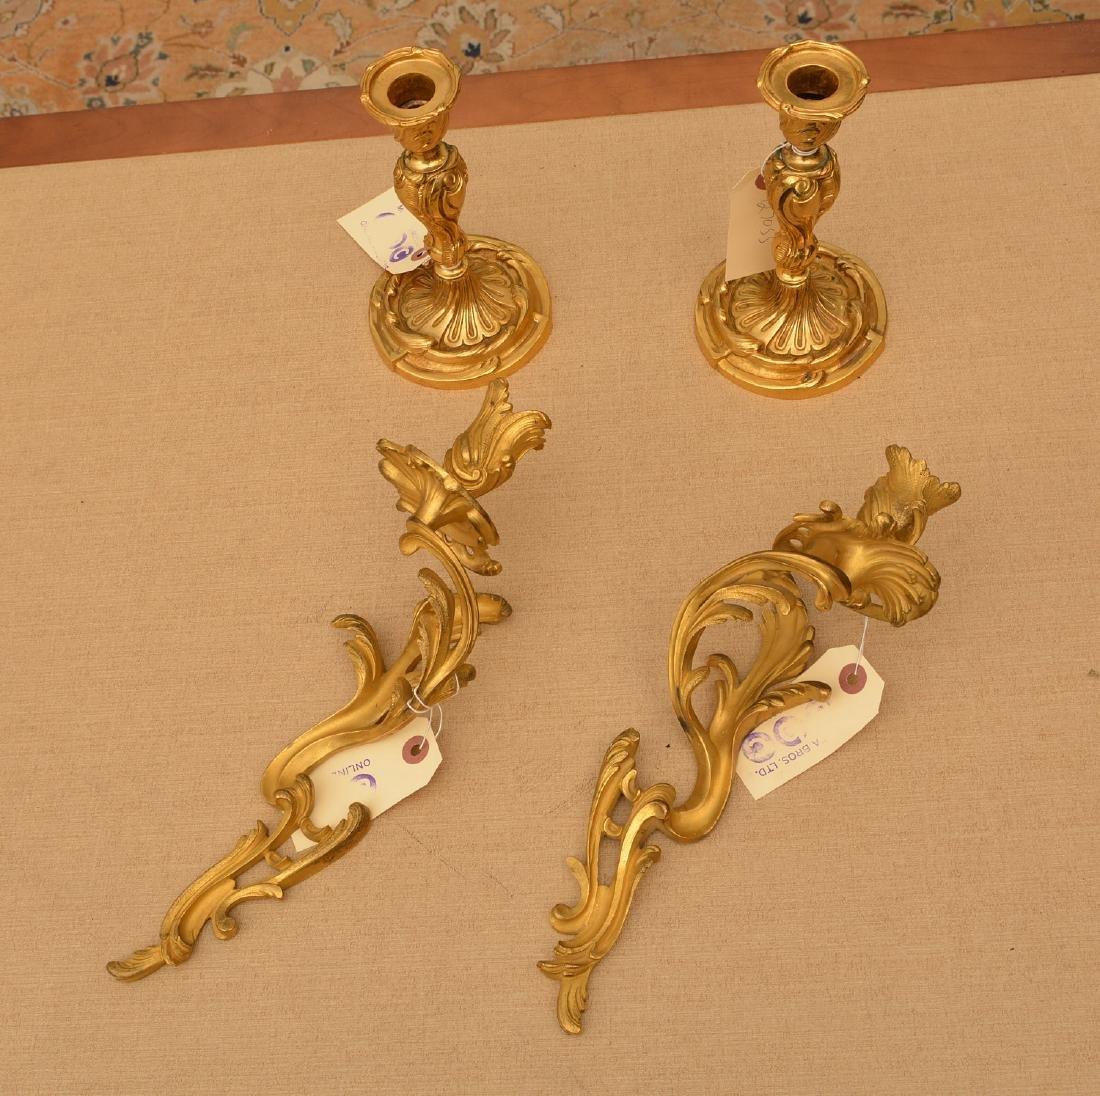 Louis XV style ormolu candlesticks and sconces